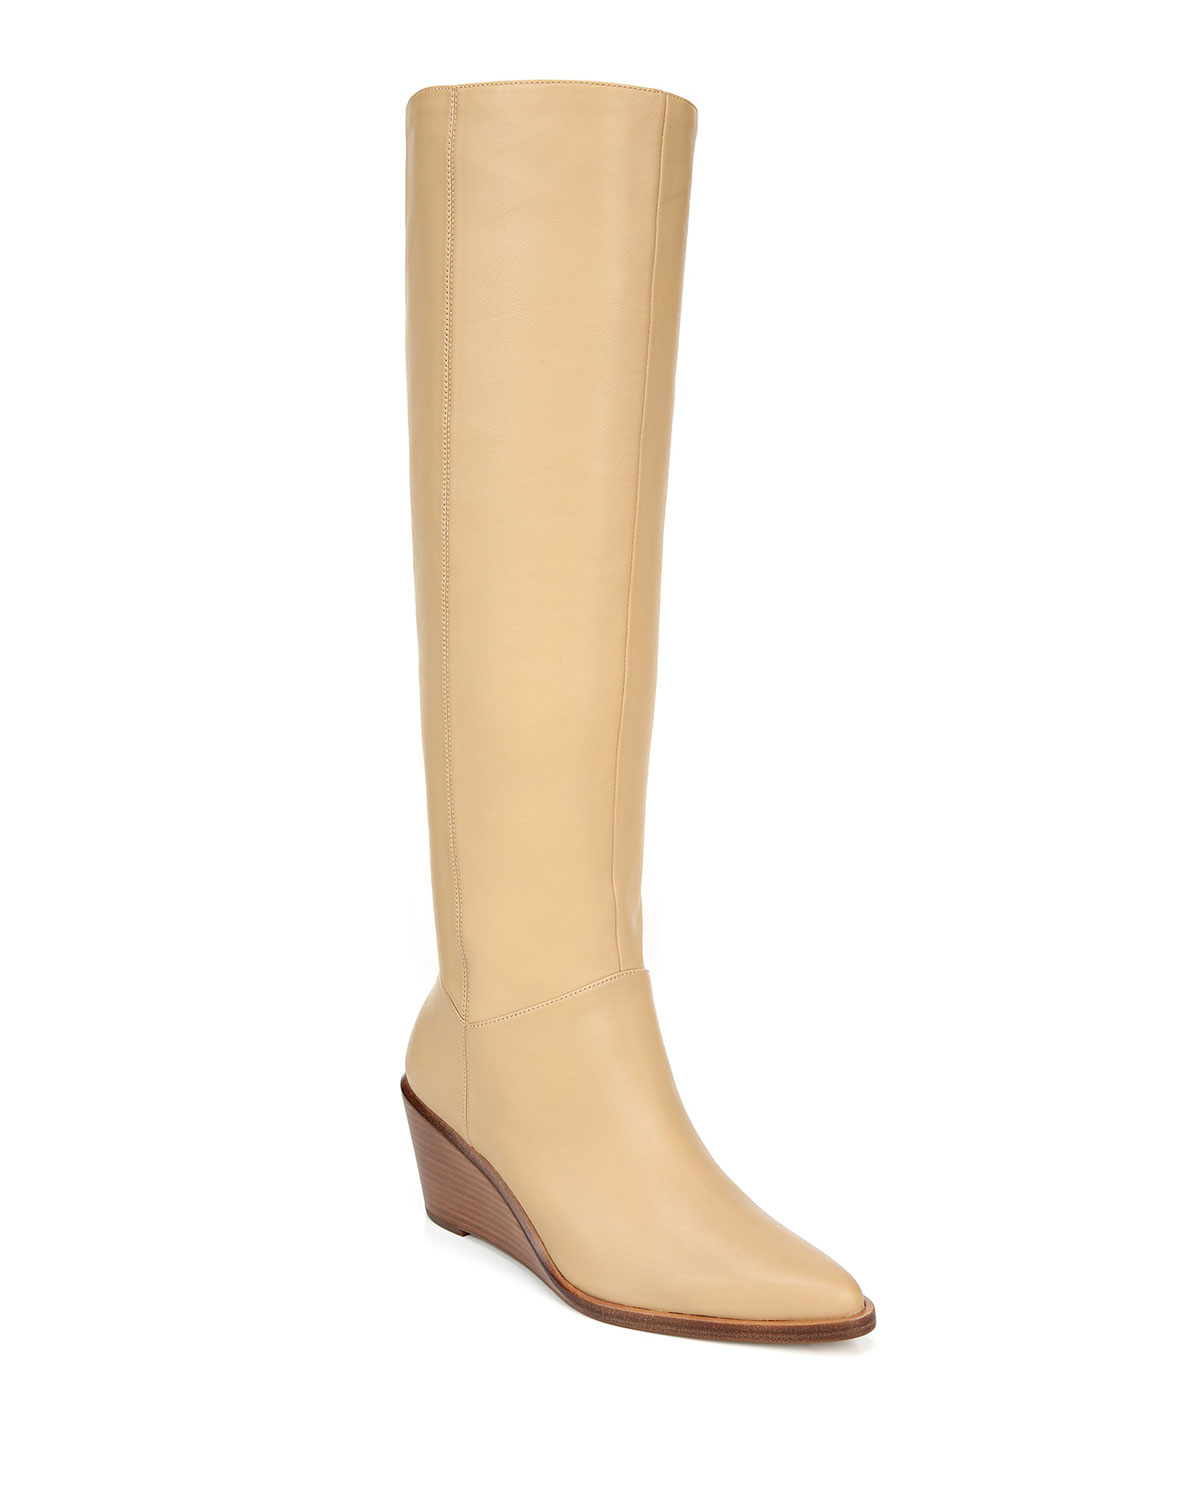 Vince Boots MARLOW HEAVY LEATHER WEDGE KNEE BOOTS